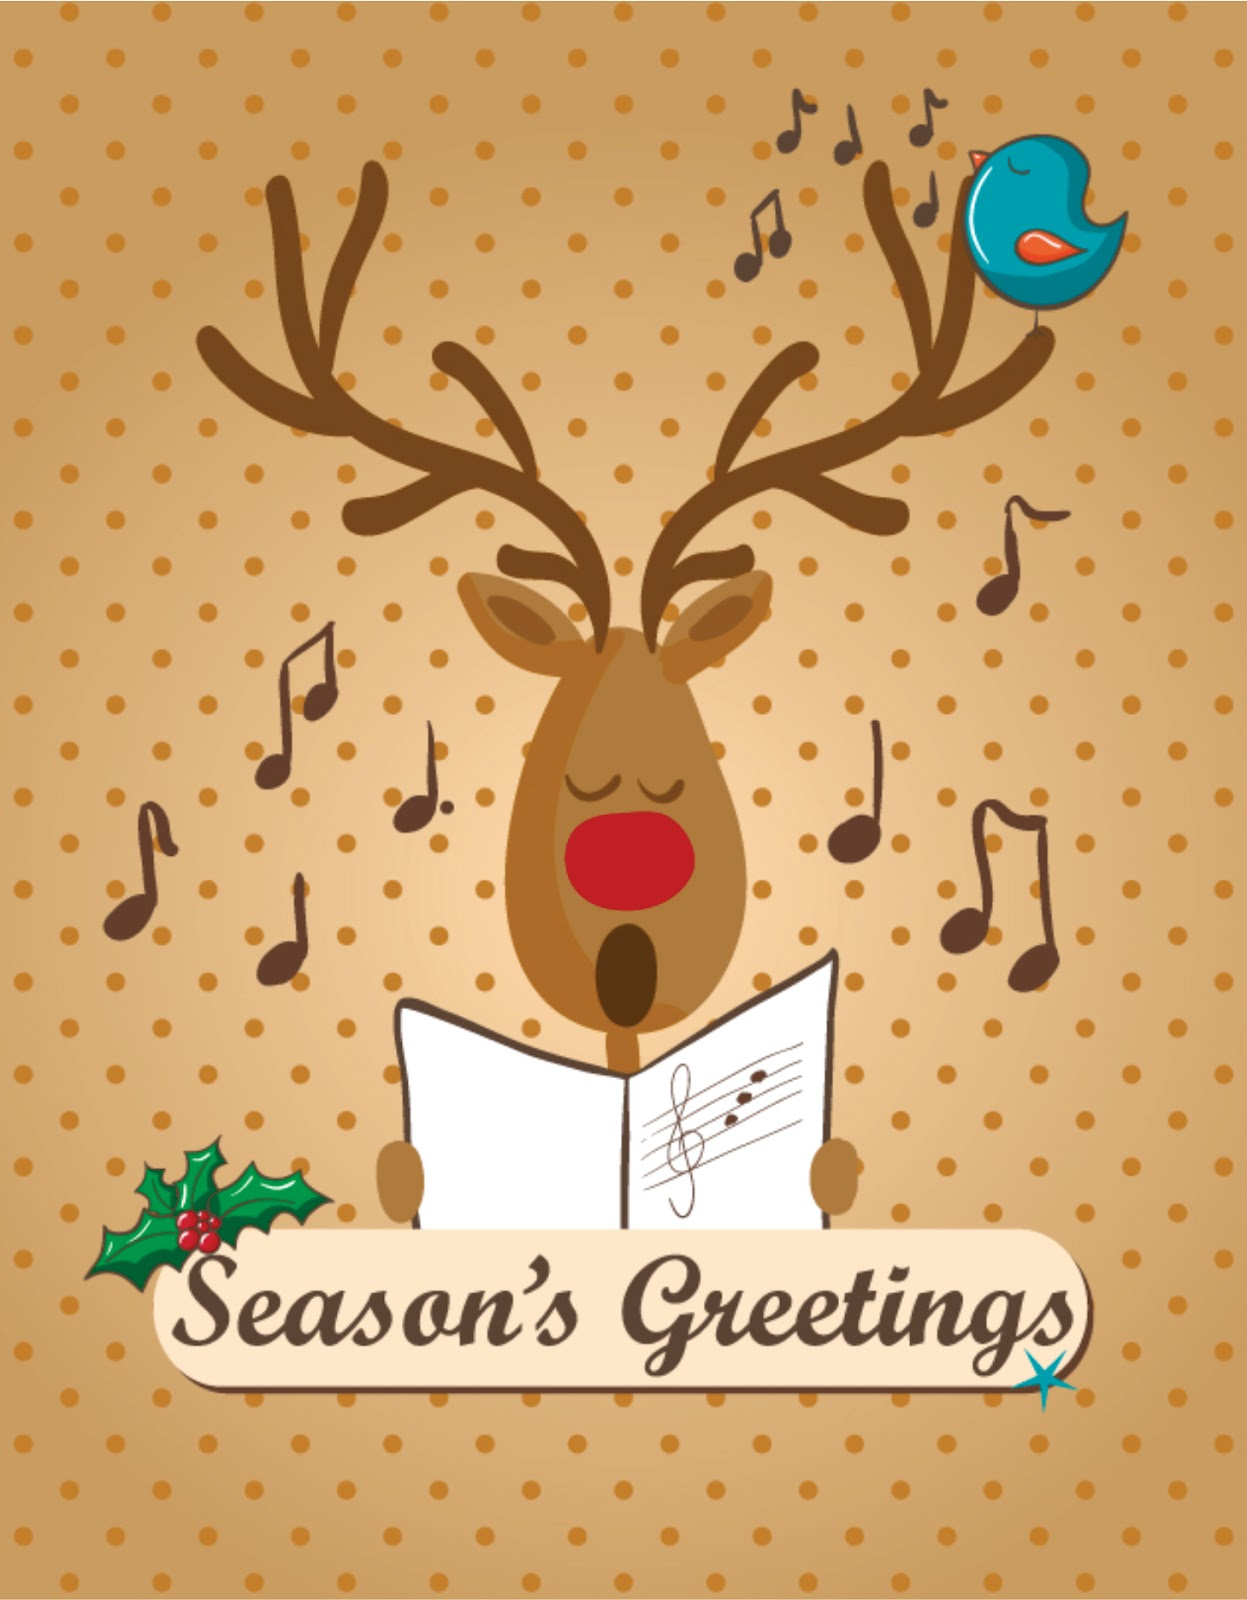 Reindeer Singing Christmas Carols Card Free Download Vector CDR, AI, EPS and PNG Formats